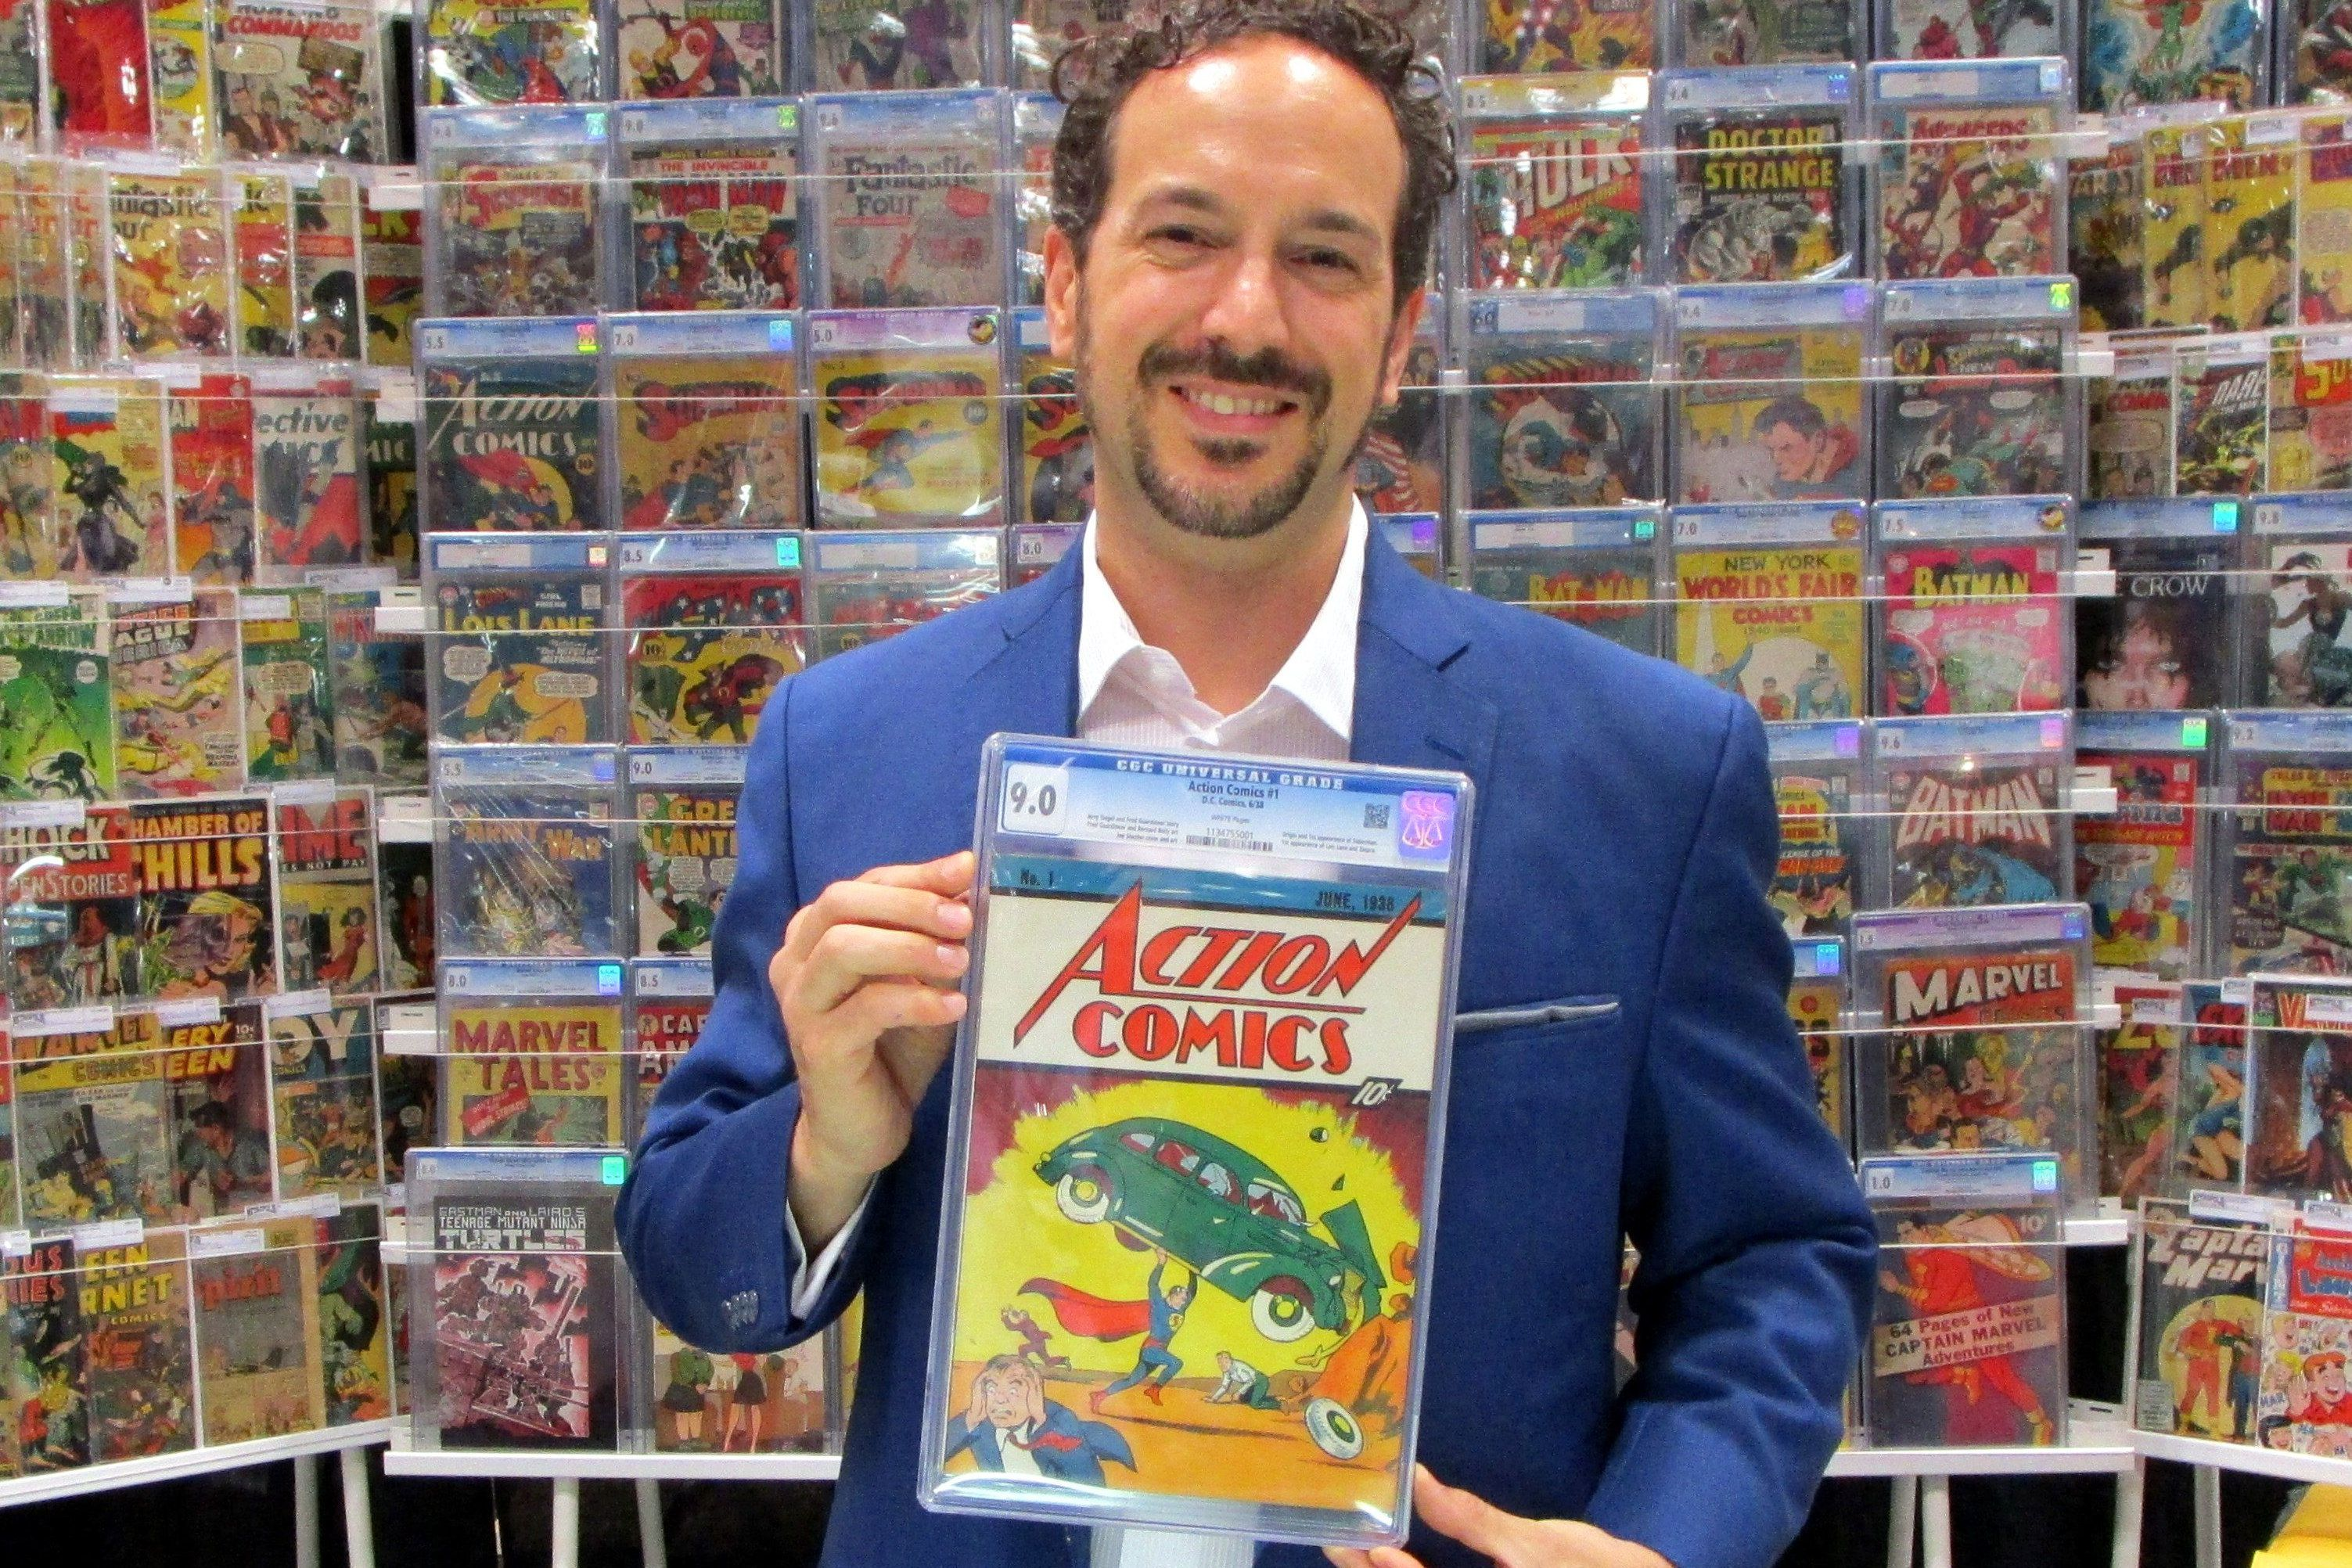 Man holding a copy of Action Comics in a comic store